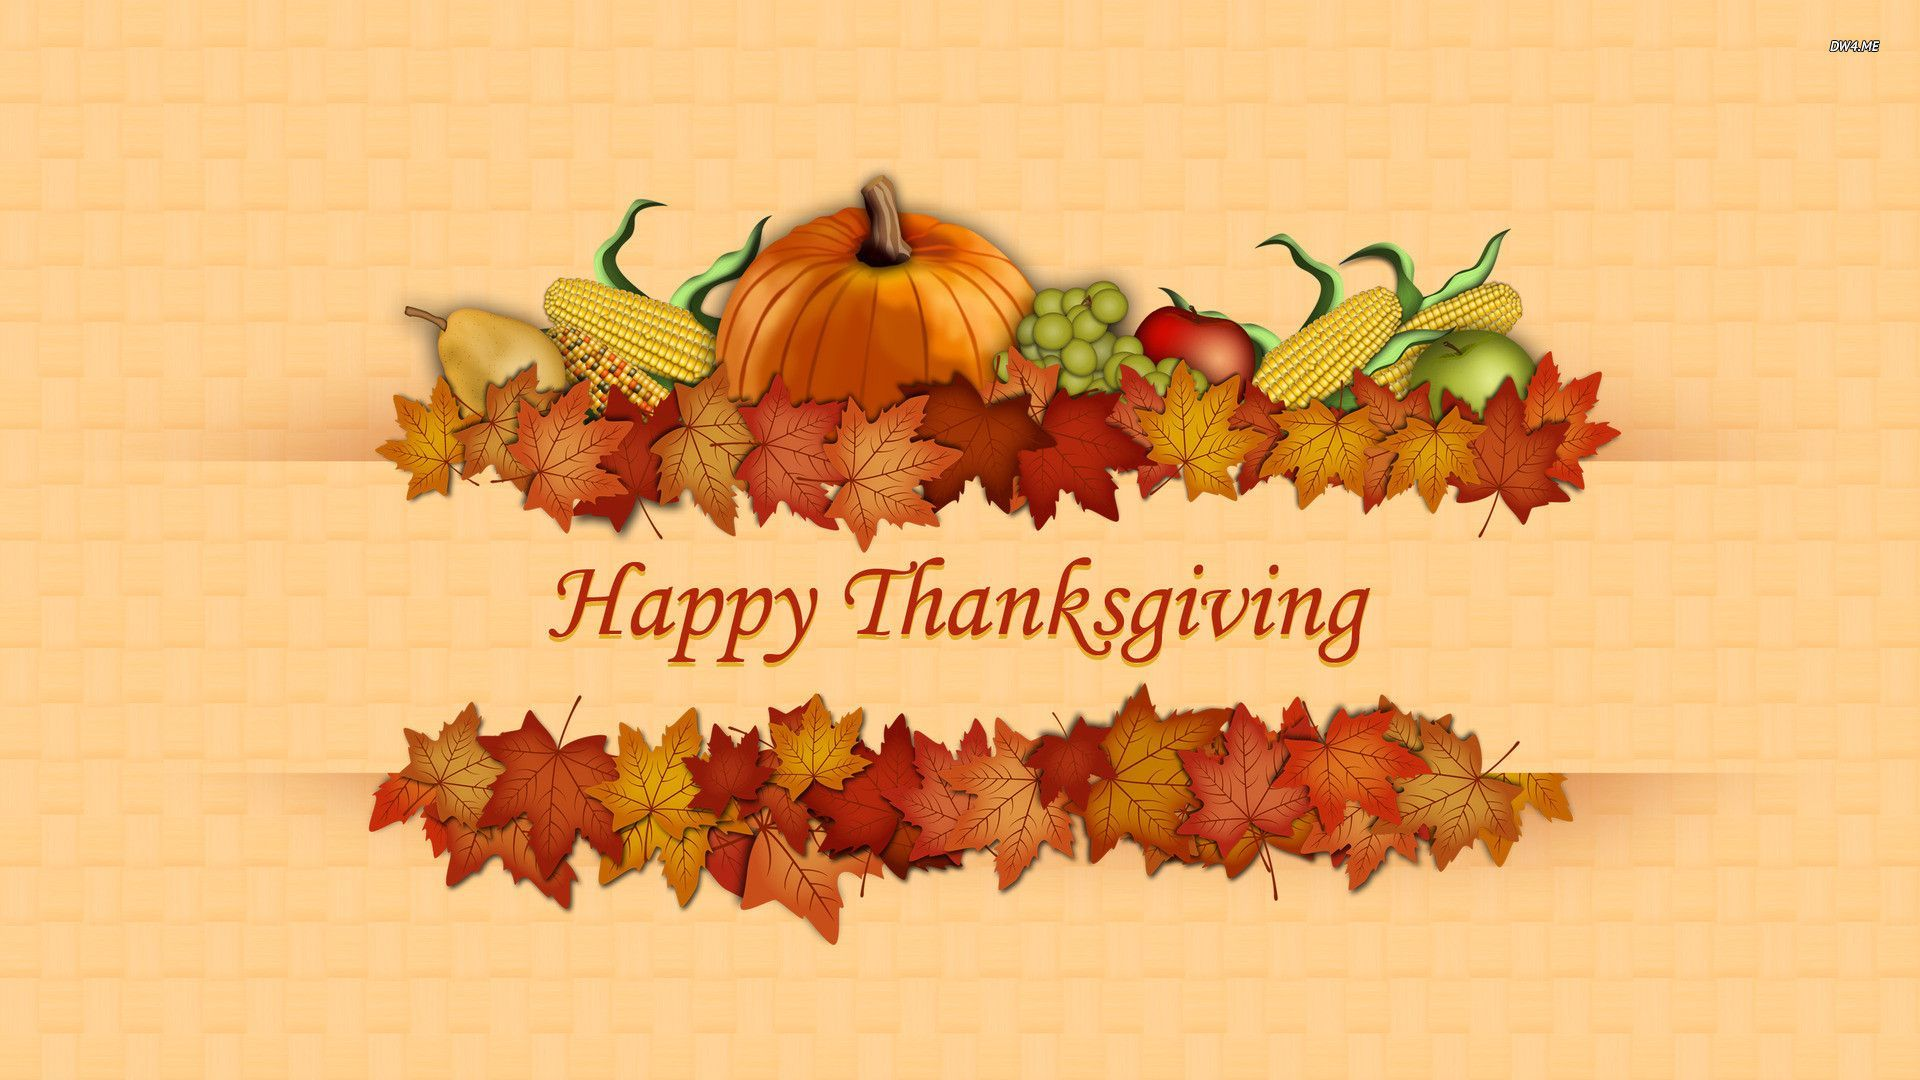 Funny Thanksgiving HD Backgrounds